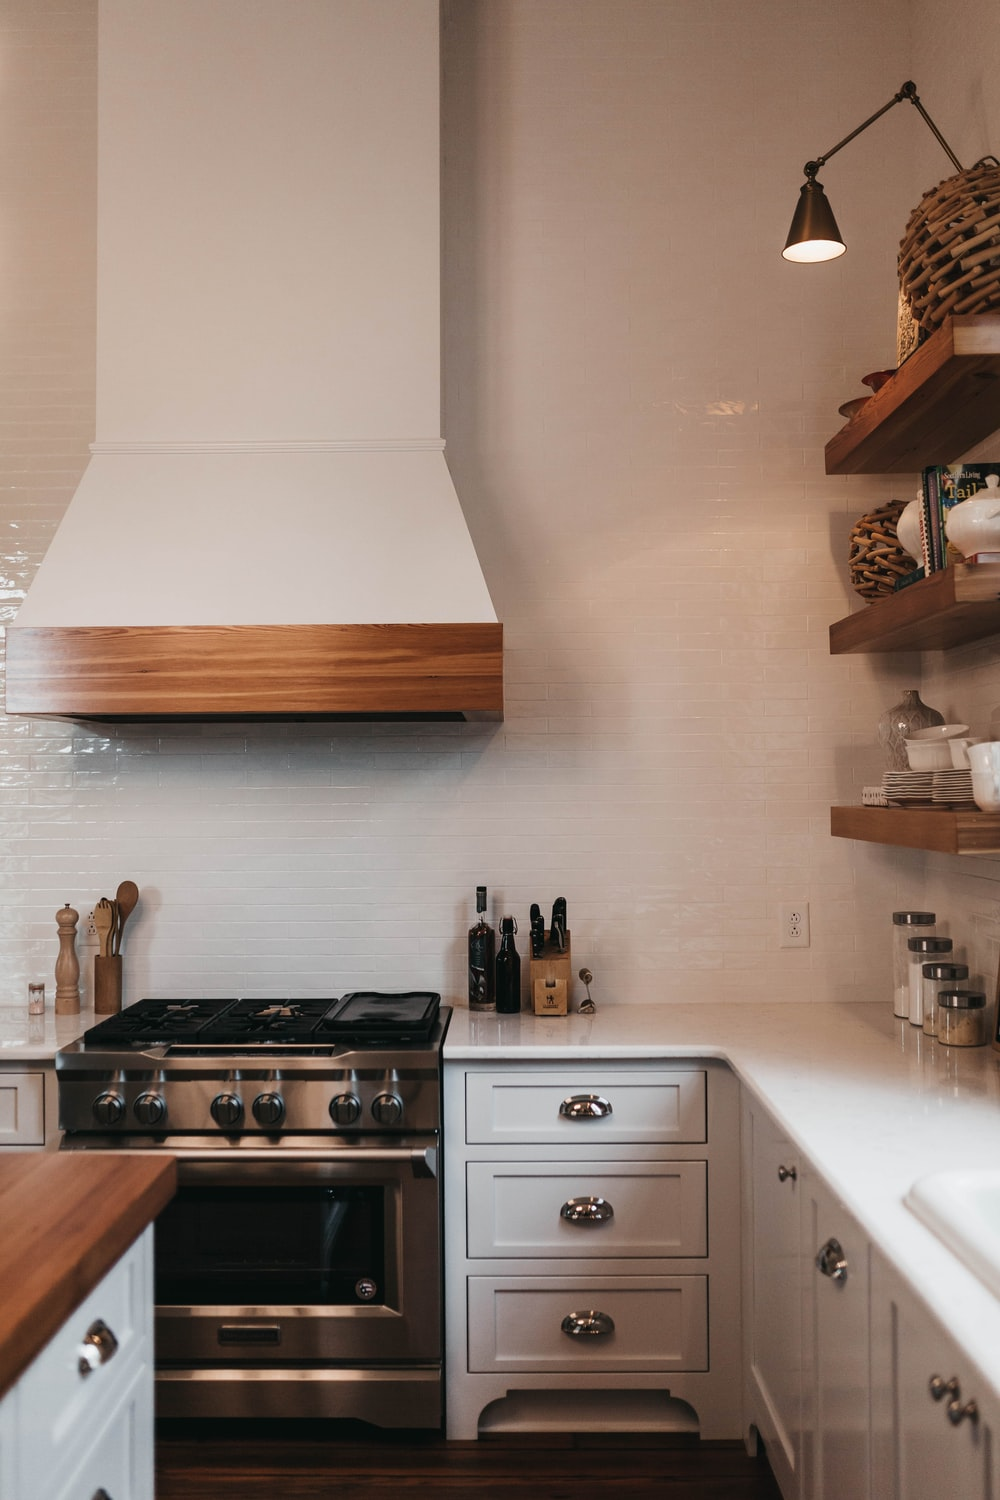 photo of clean kitchen cupboards